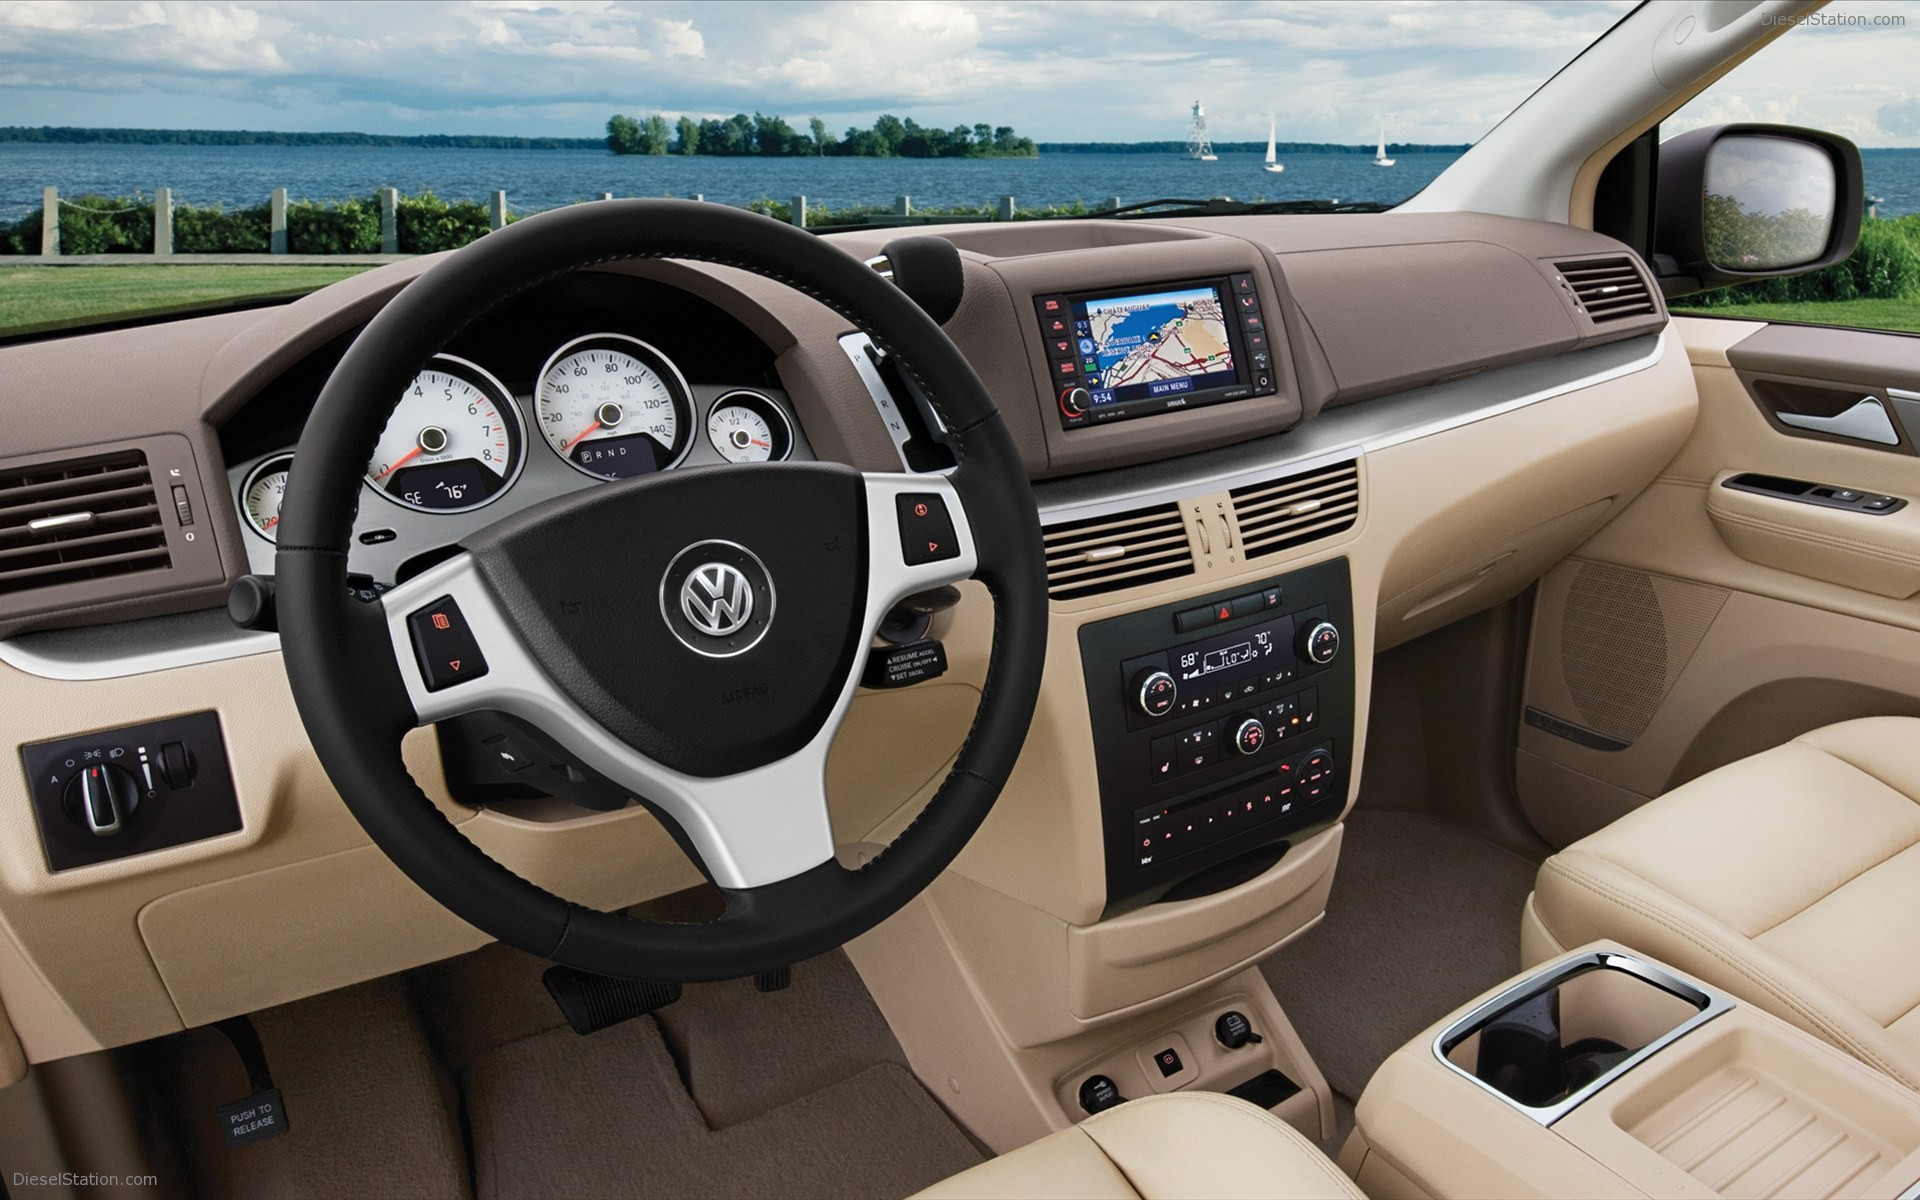 2012-volkswagen-routan-wallpaper-ybjmgr5e